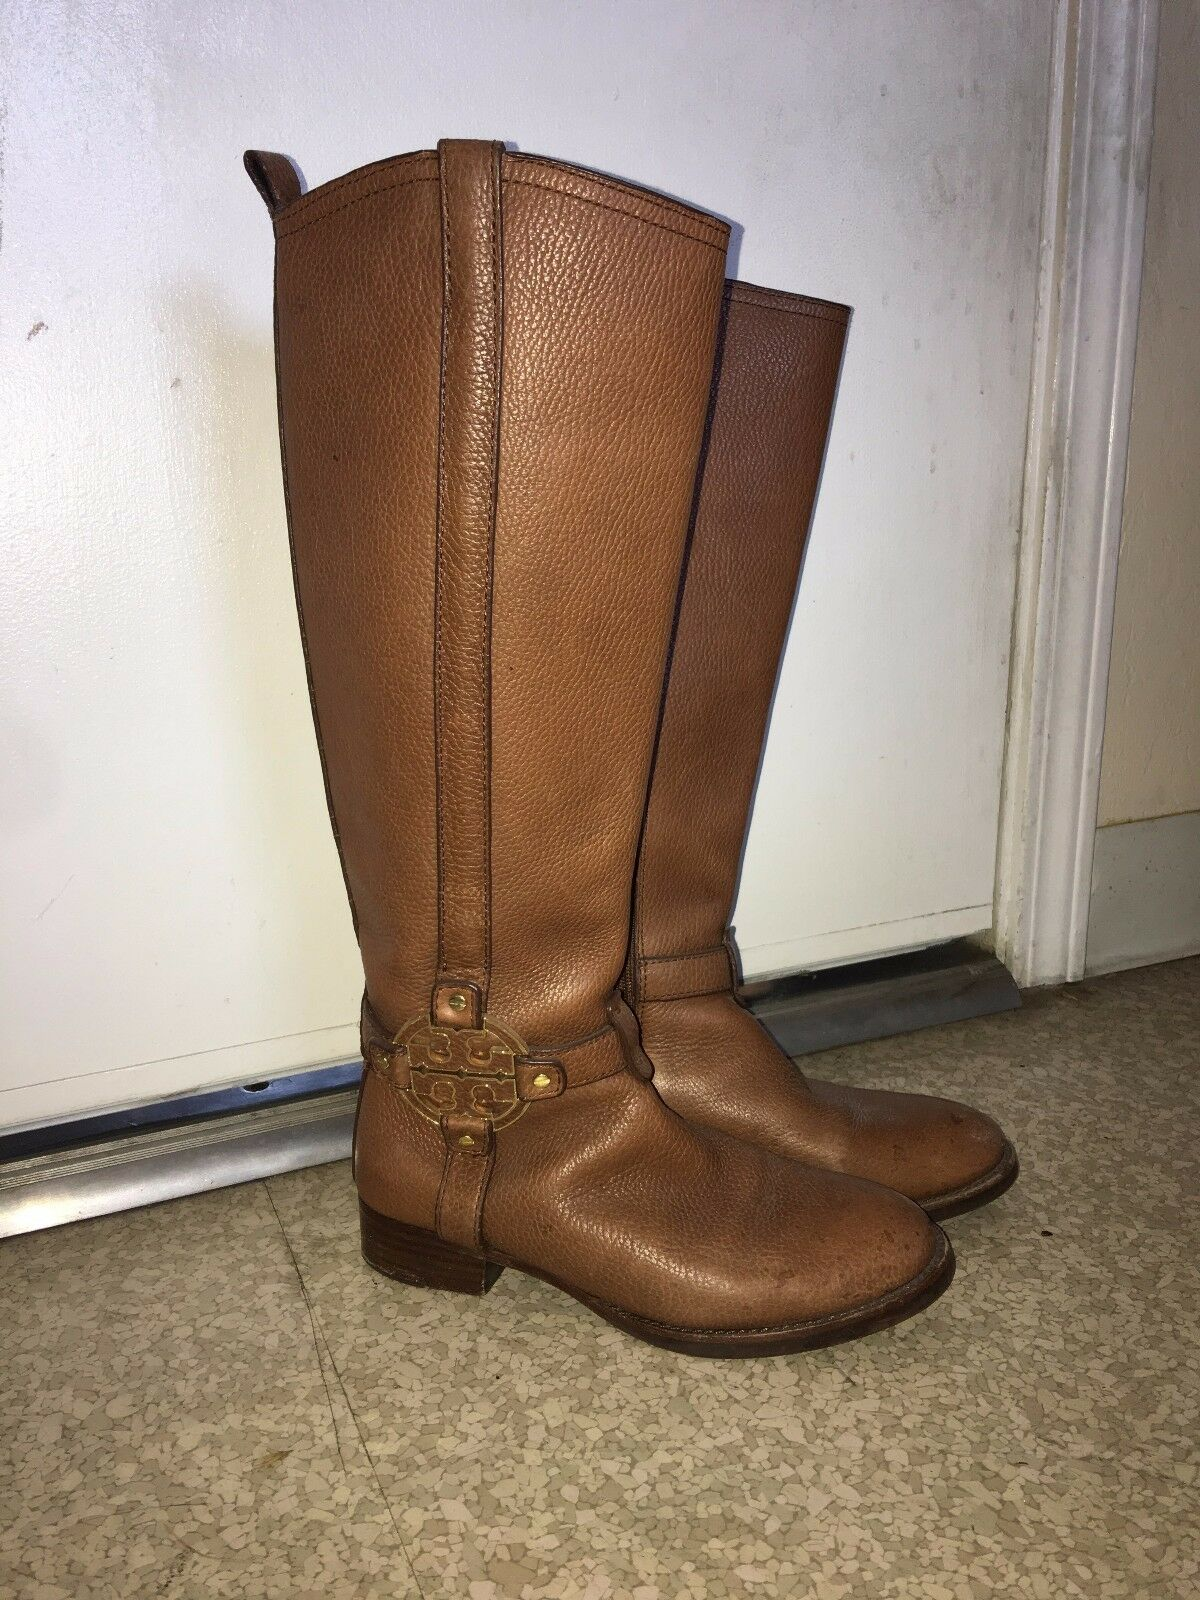 Tory Burch Brown Amanda Riding Boots Size 6 Leather Authentic Womens